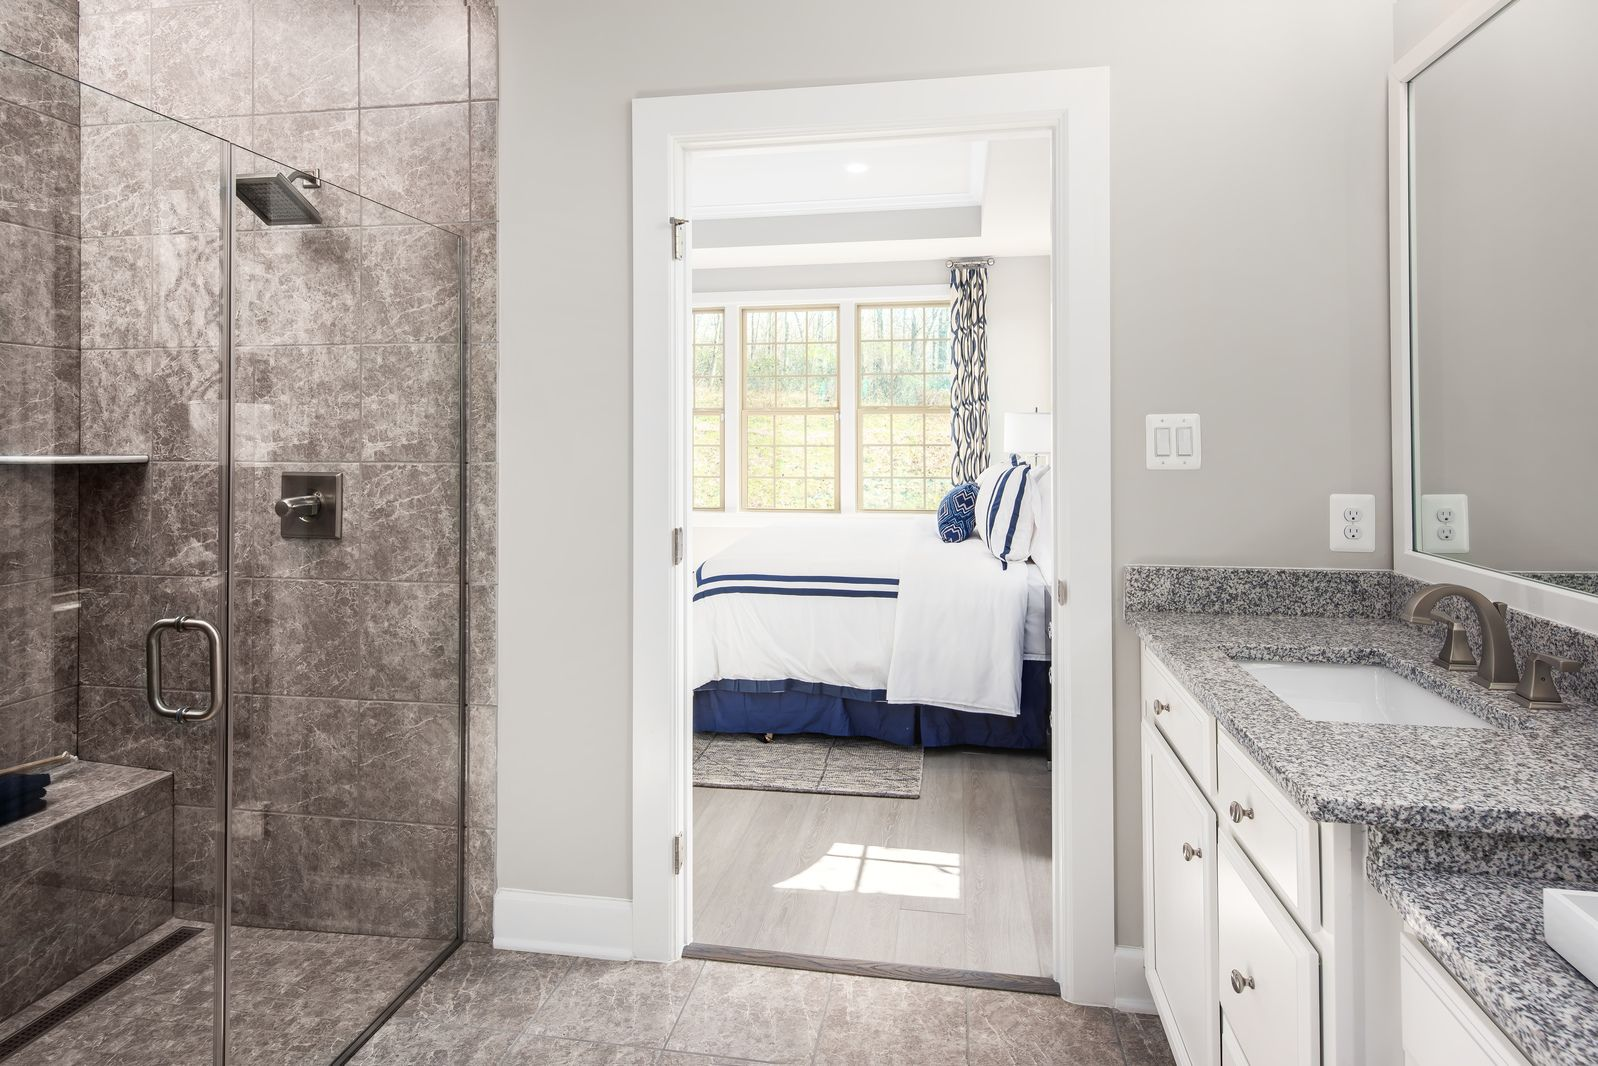 Bathroom featured in the Albright By HeartlandHomes in Pittsburgh, PA